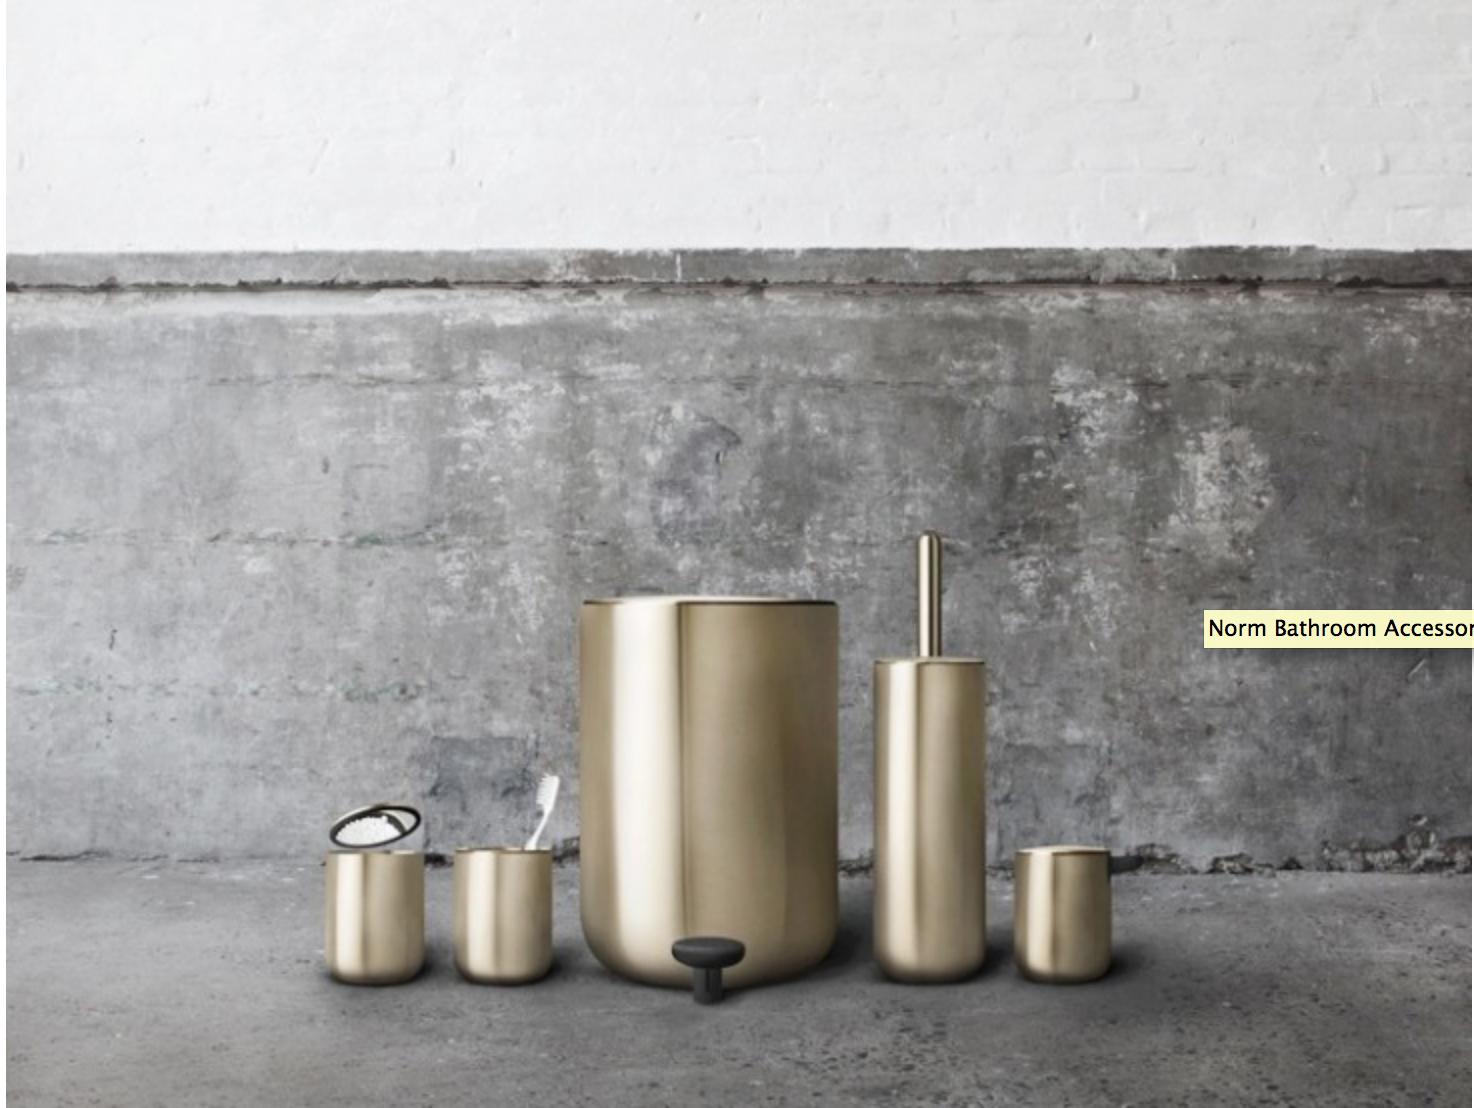 The Norm Bath Collection In Brushed Gold New From Jonas Bjerre Poulsen And Kasper Ronn Of Copenhagen Based Norm Arc Norm Architects Bathroom Tool Modern Baths